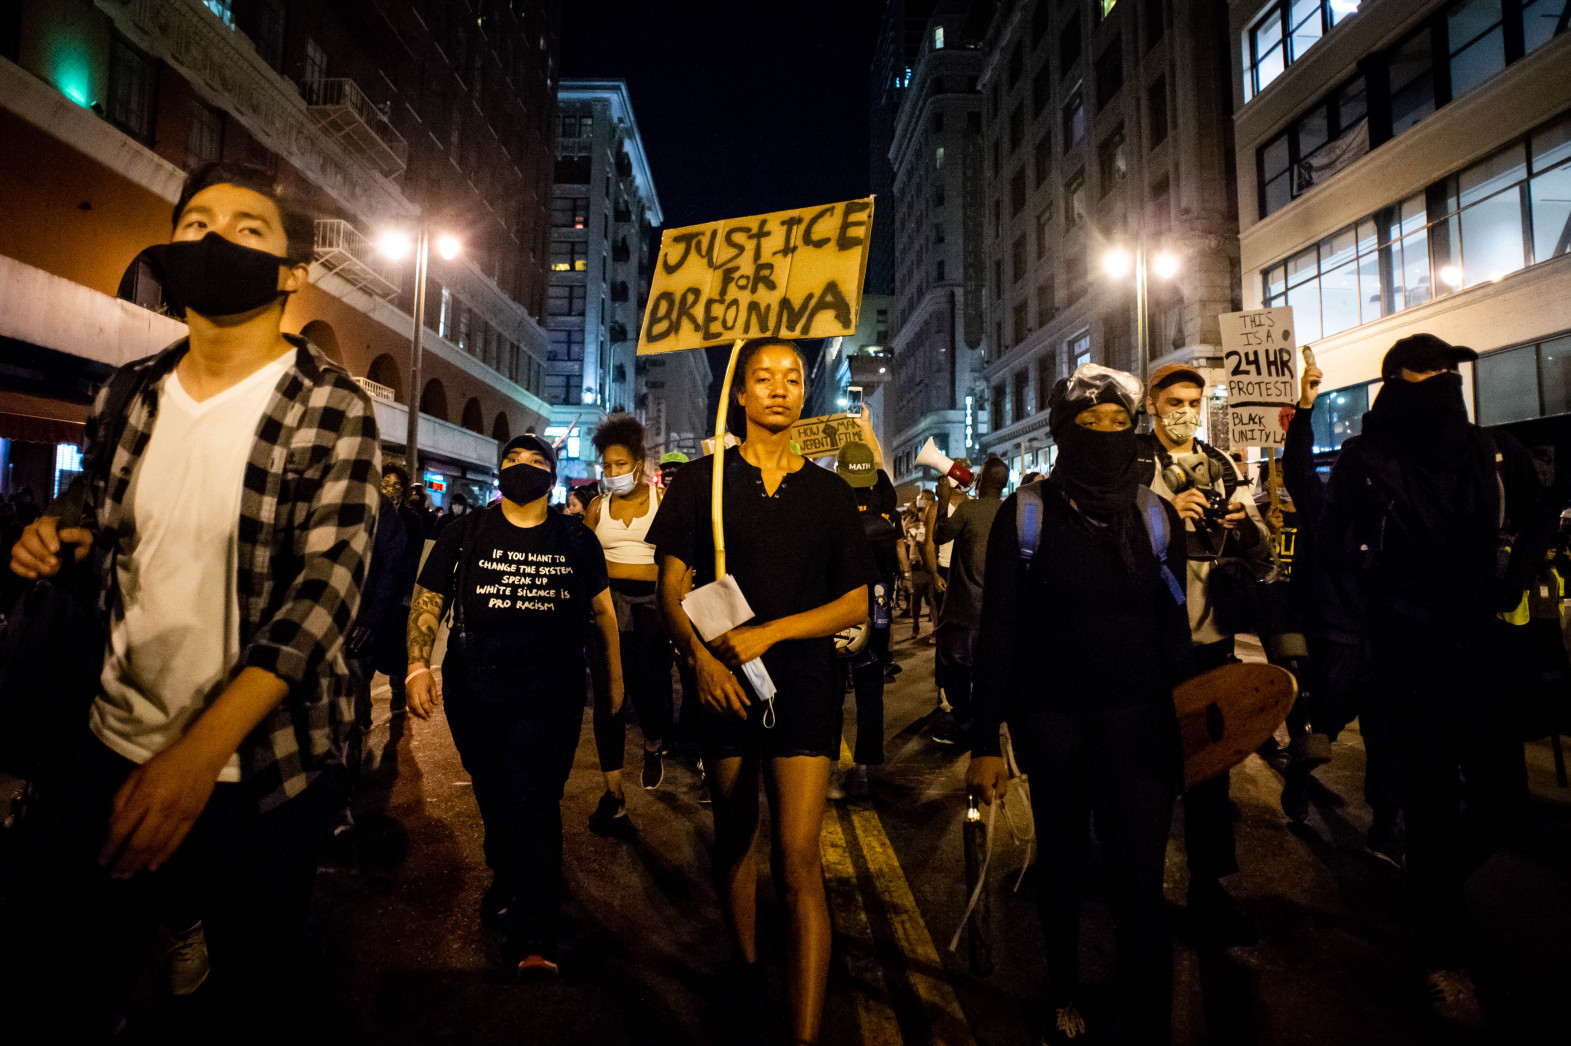 Demonstrators march through Downtown LA in protest of lack of charges in death of Breonna Taylor